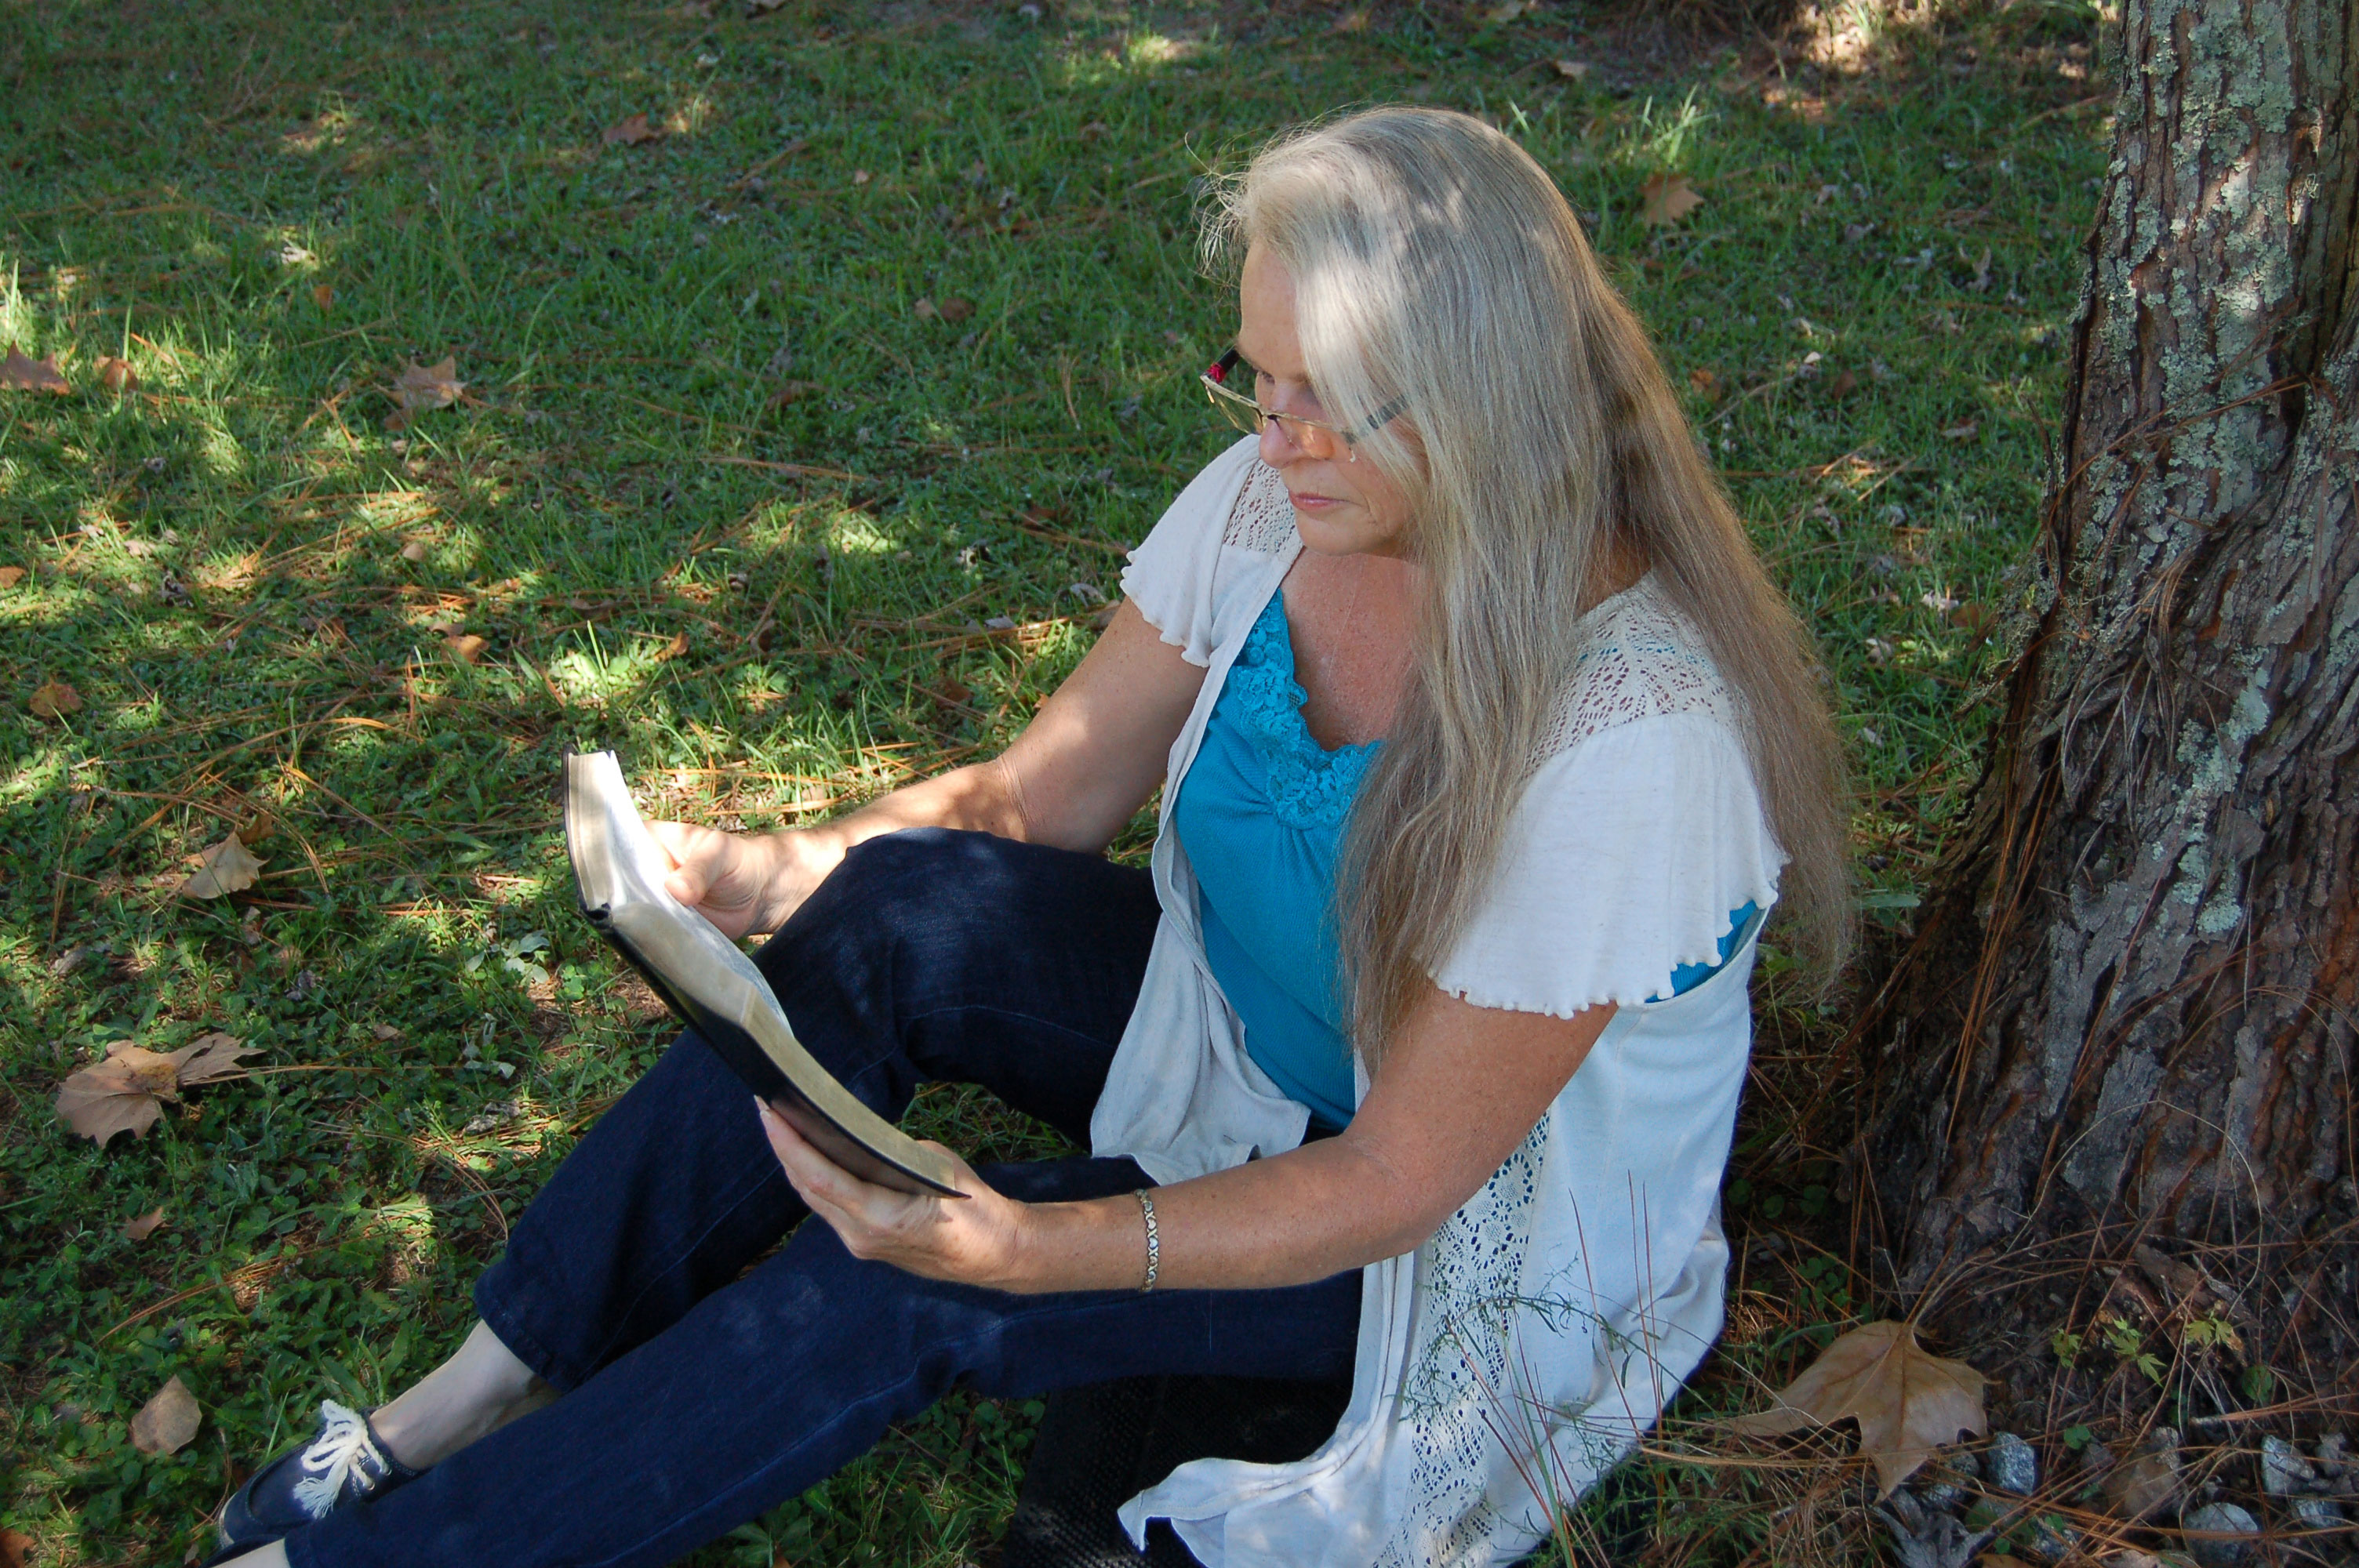 Christian Stock Photos by Linda Bateman - Woman Reading Bible Outdoors, Sitting by Tree